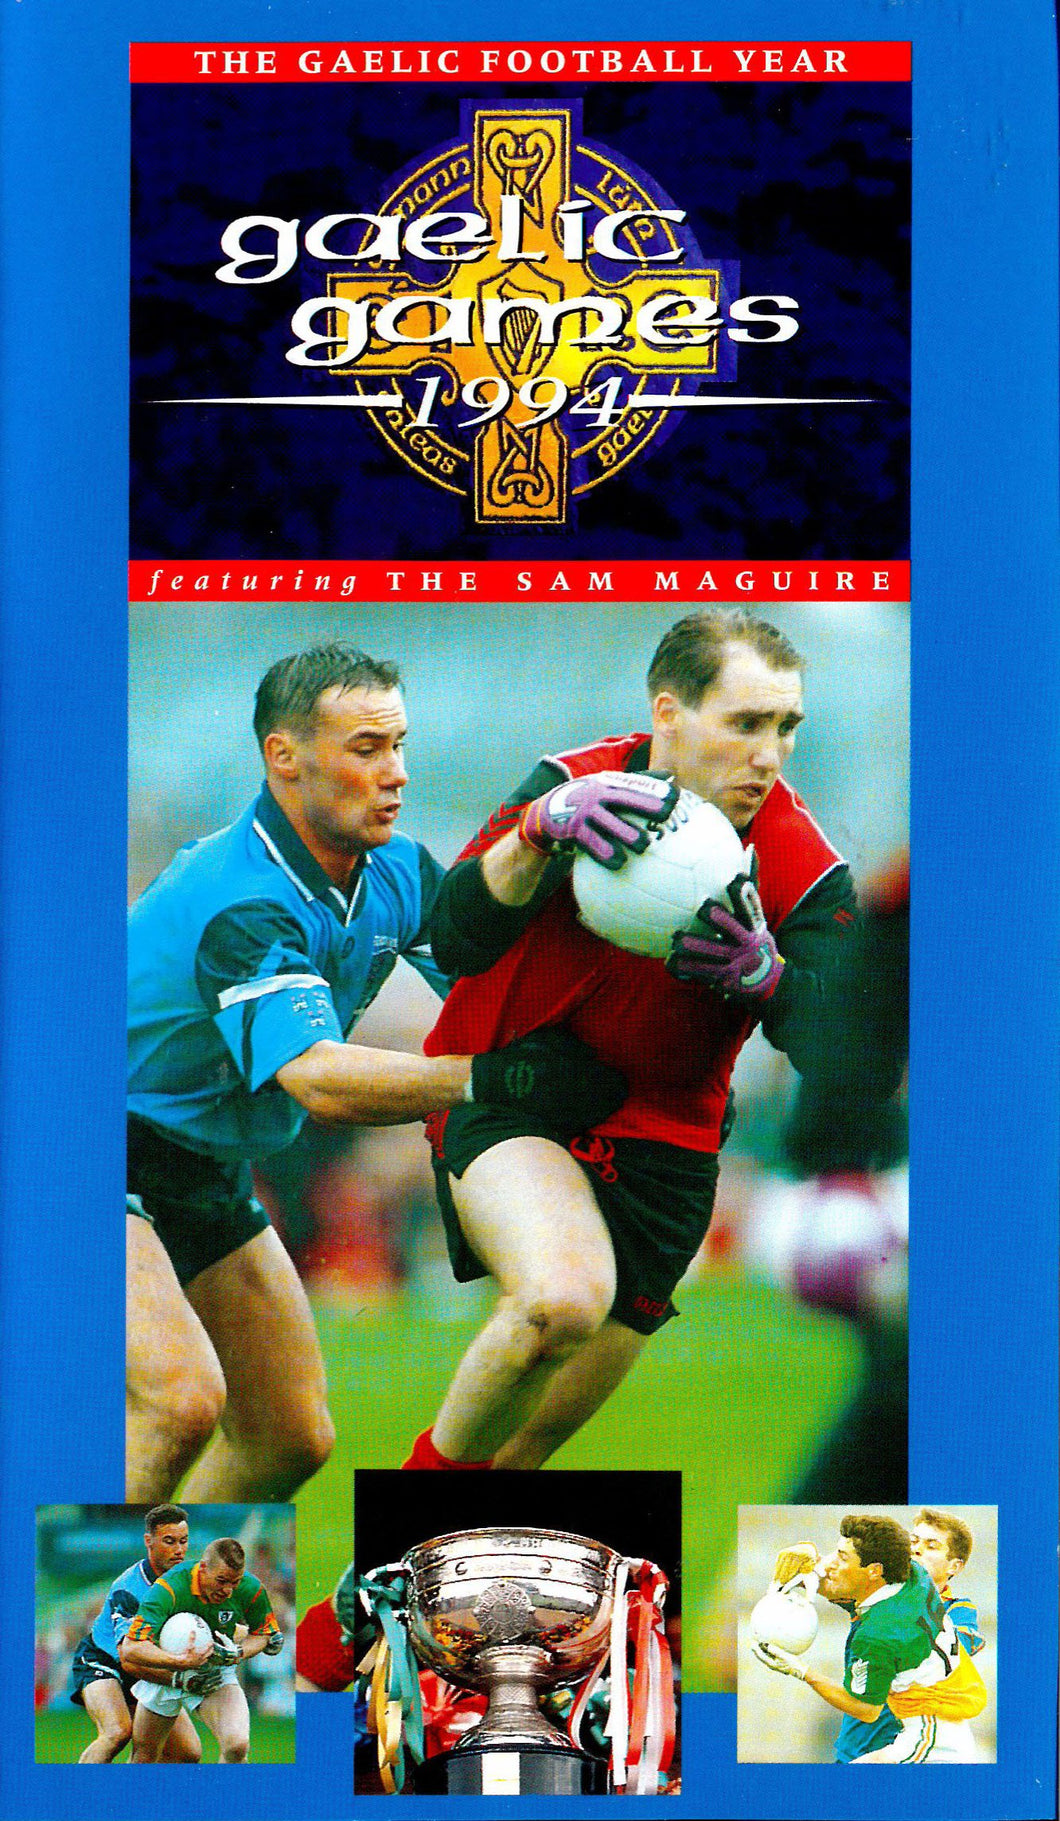 Gaelic Games 1994 featuring The Sam Maguire